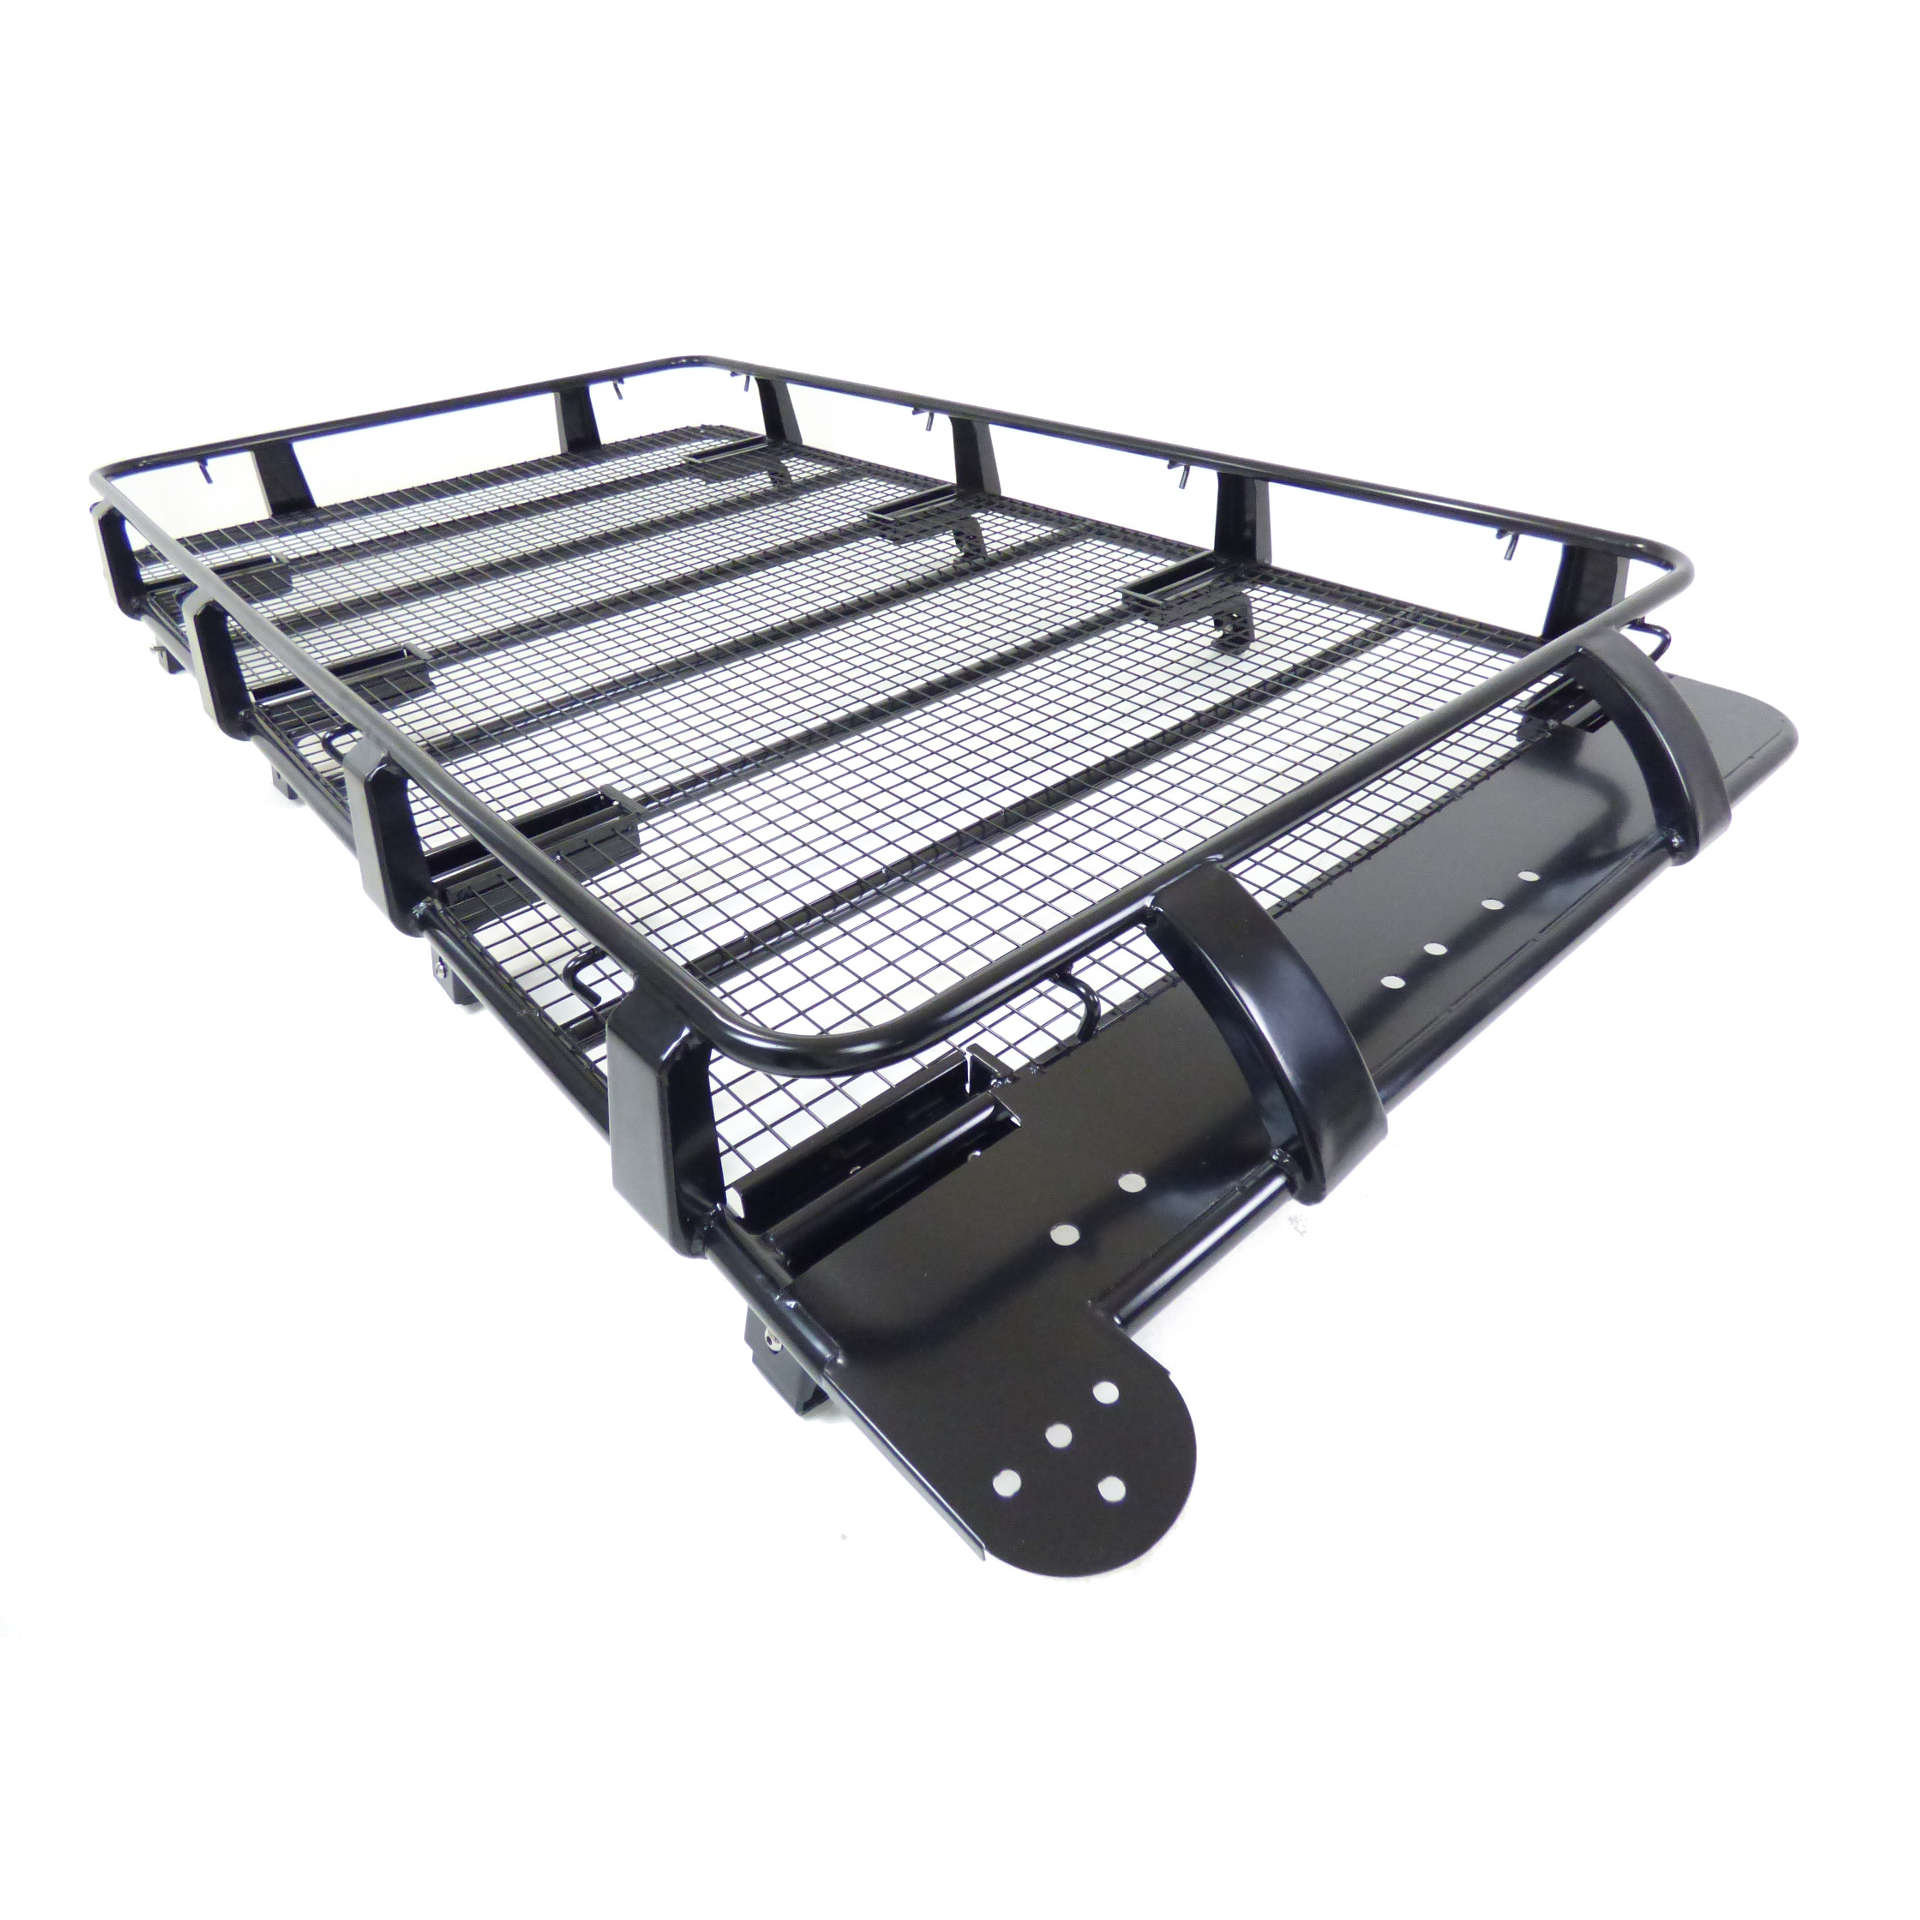 Direct4x4 Accessories UK | Expedition Full Basket Roof Rack